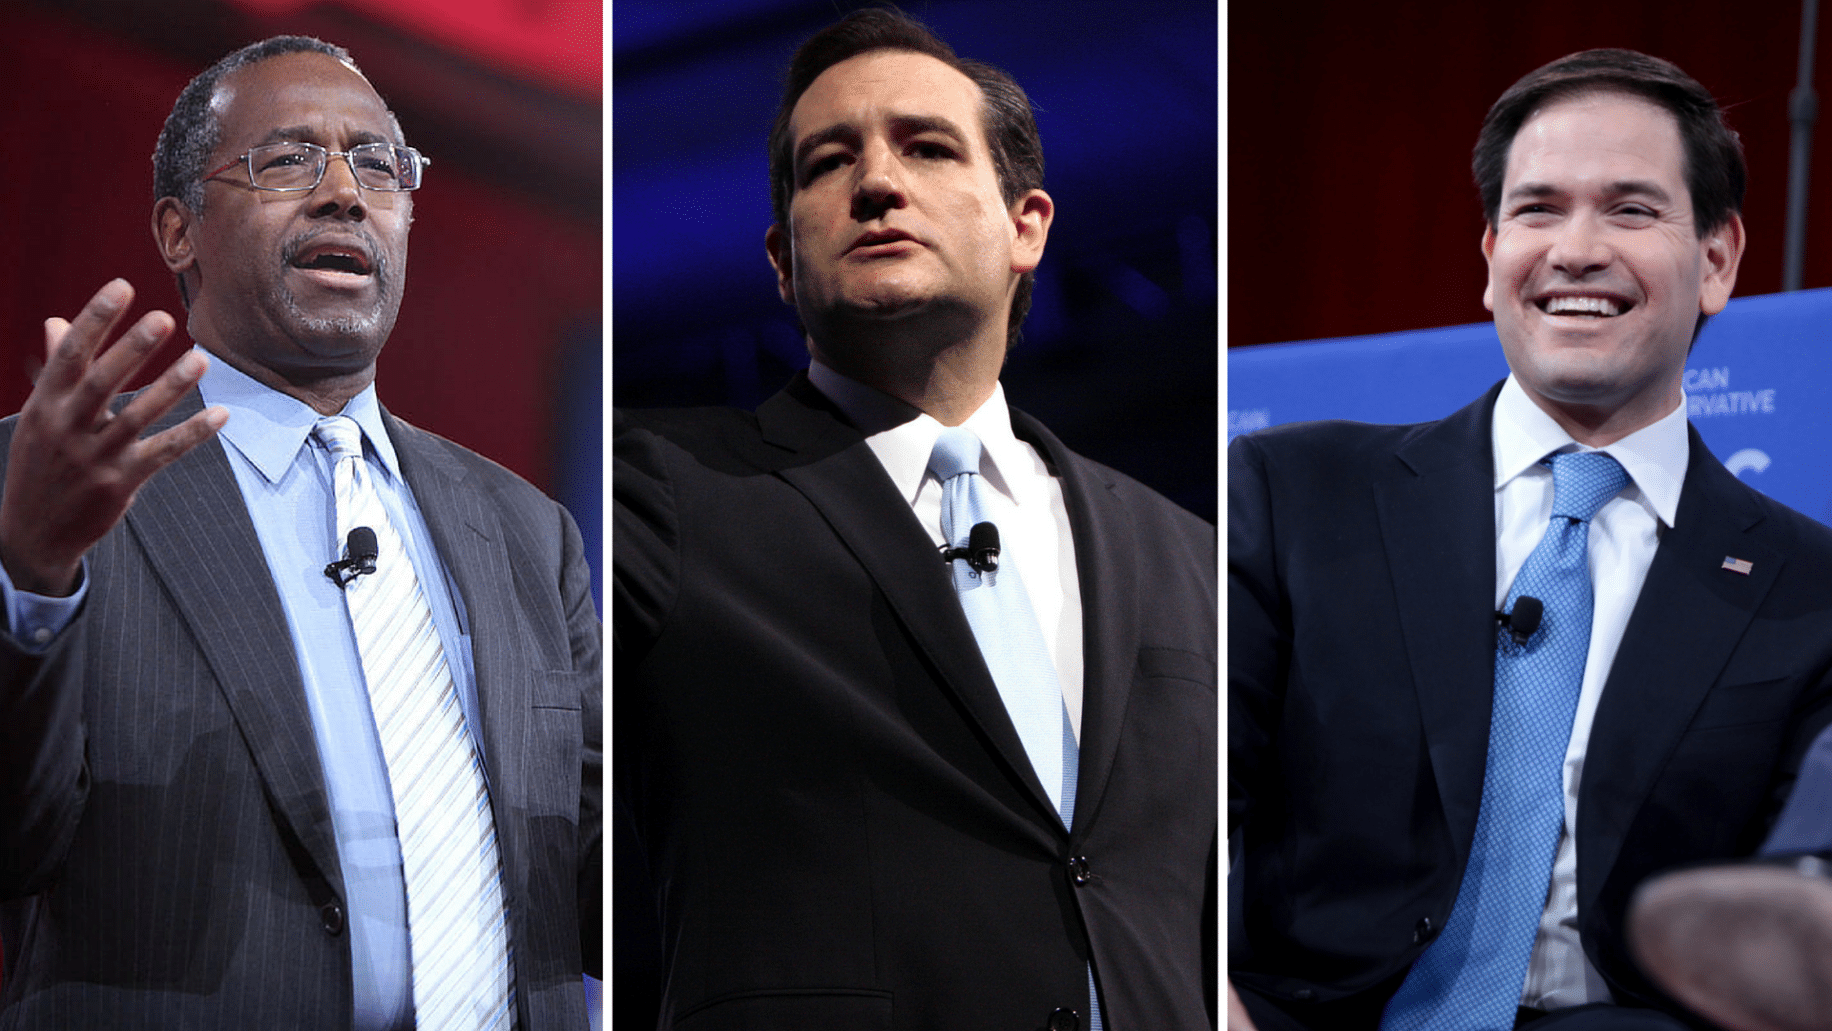 Ben Carson, Ted Cruz, Marco Rubio have pledged to support First Amendment Defense Act in their first 100 days. Photo credit: Gage Skidmore (CC-By-SA 2.0)